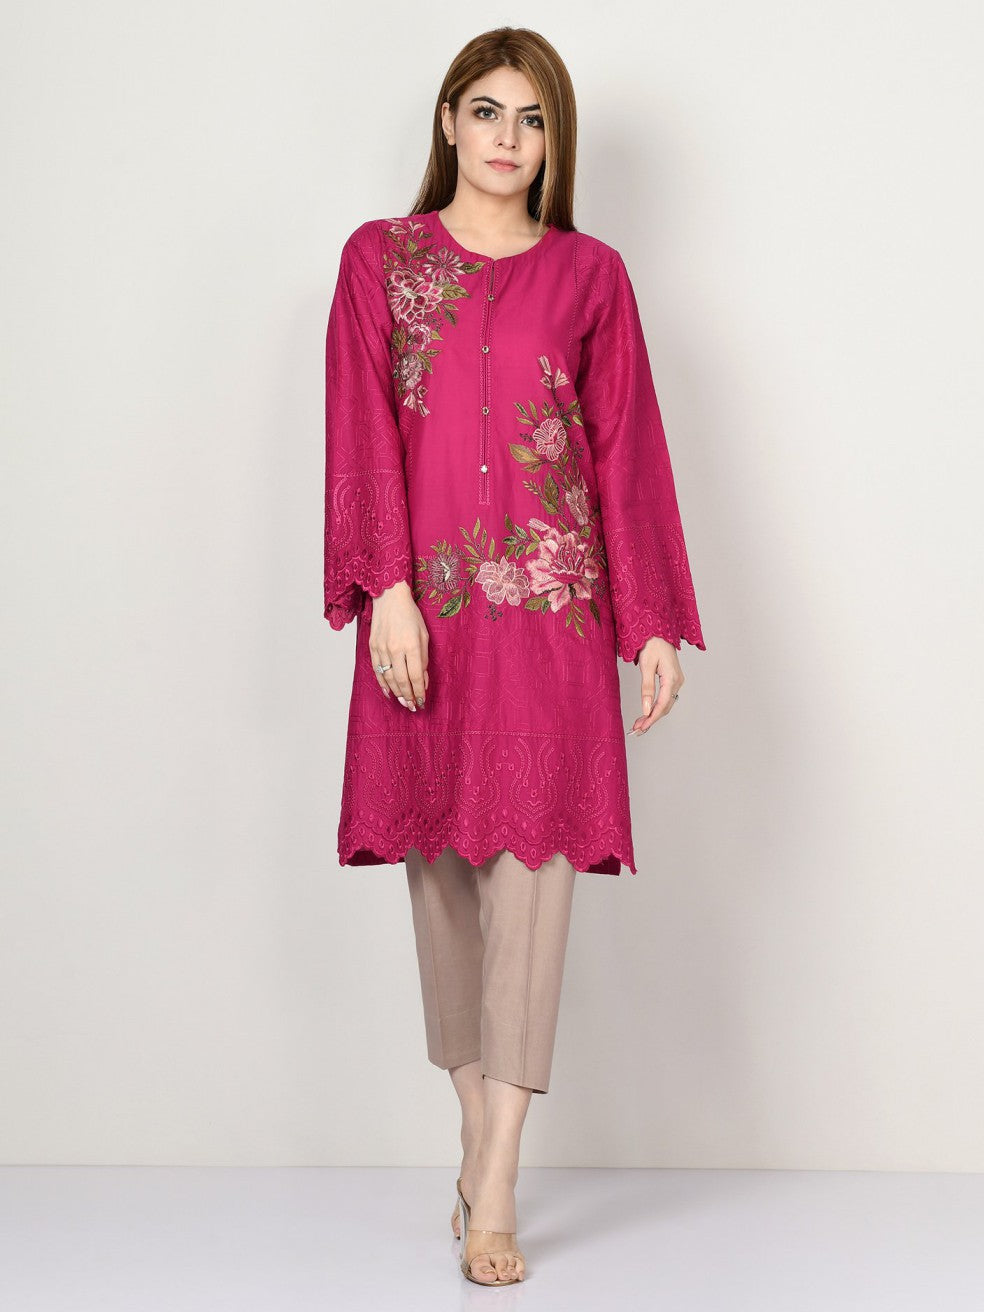 Limelight - Shocking Pink Embroidered Lawn Shirt - 1 PC - 1797P